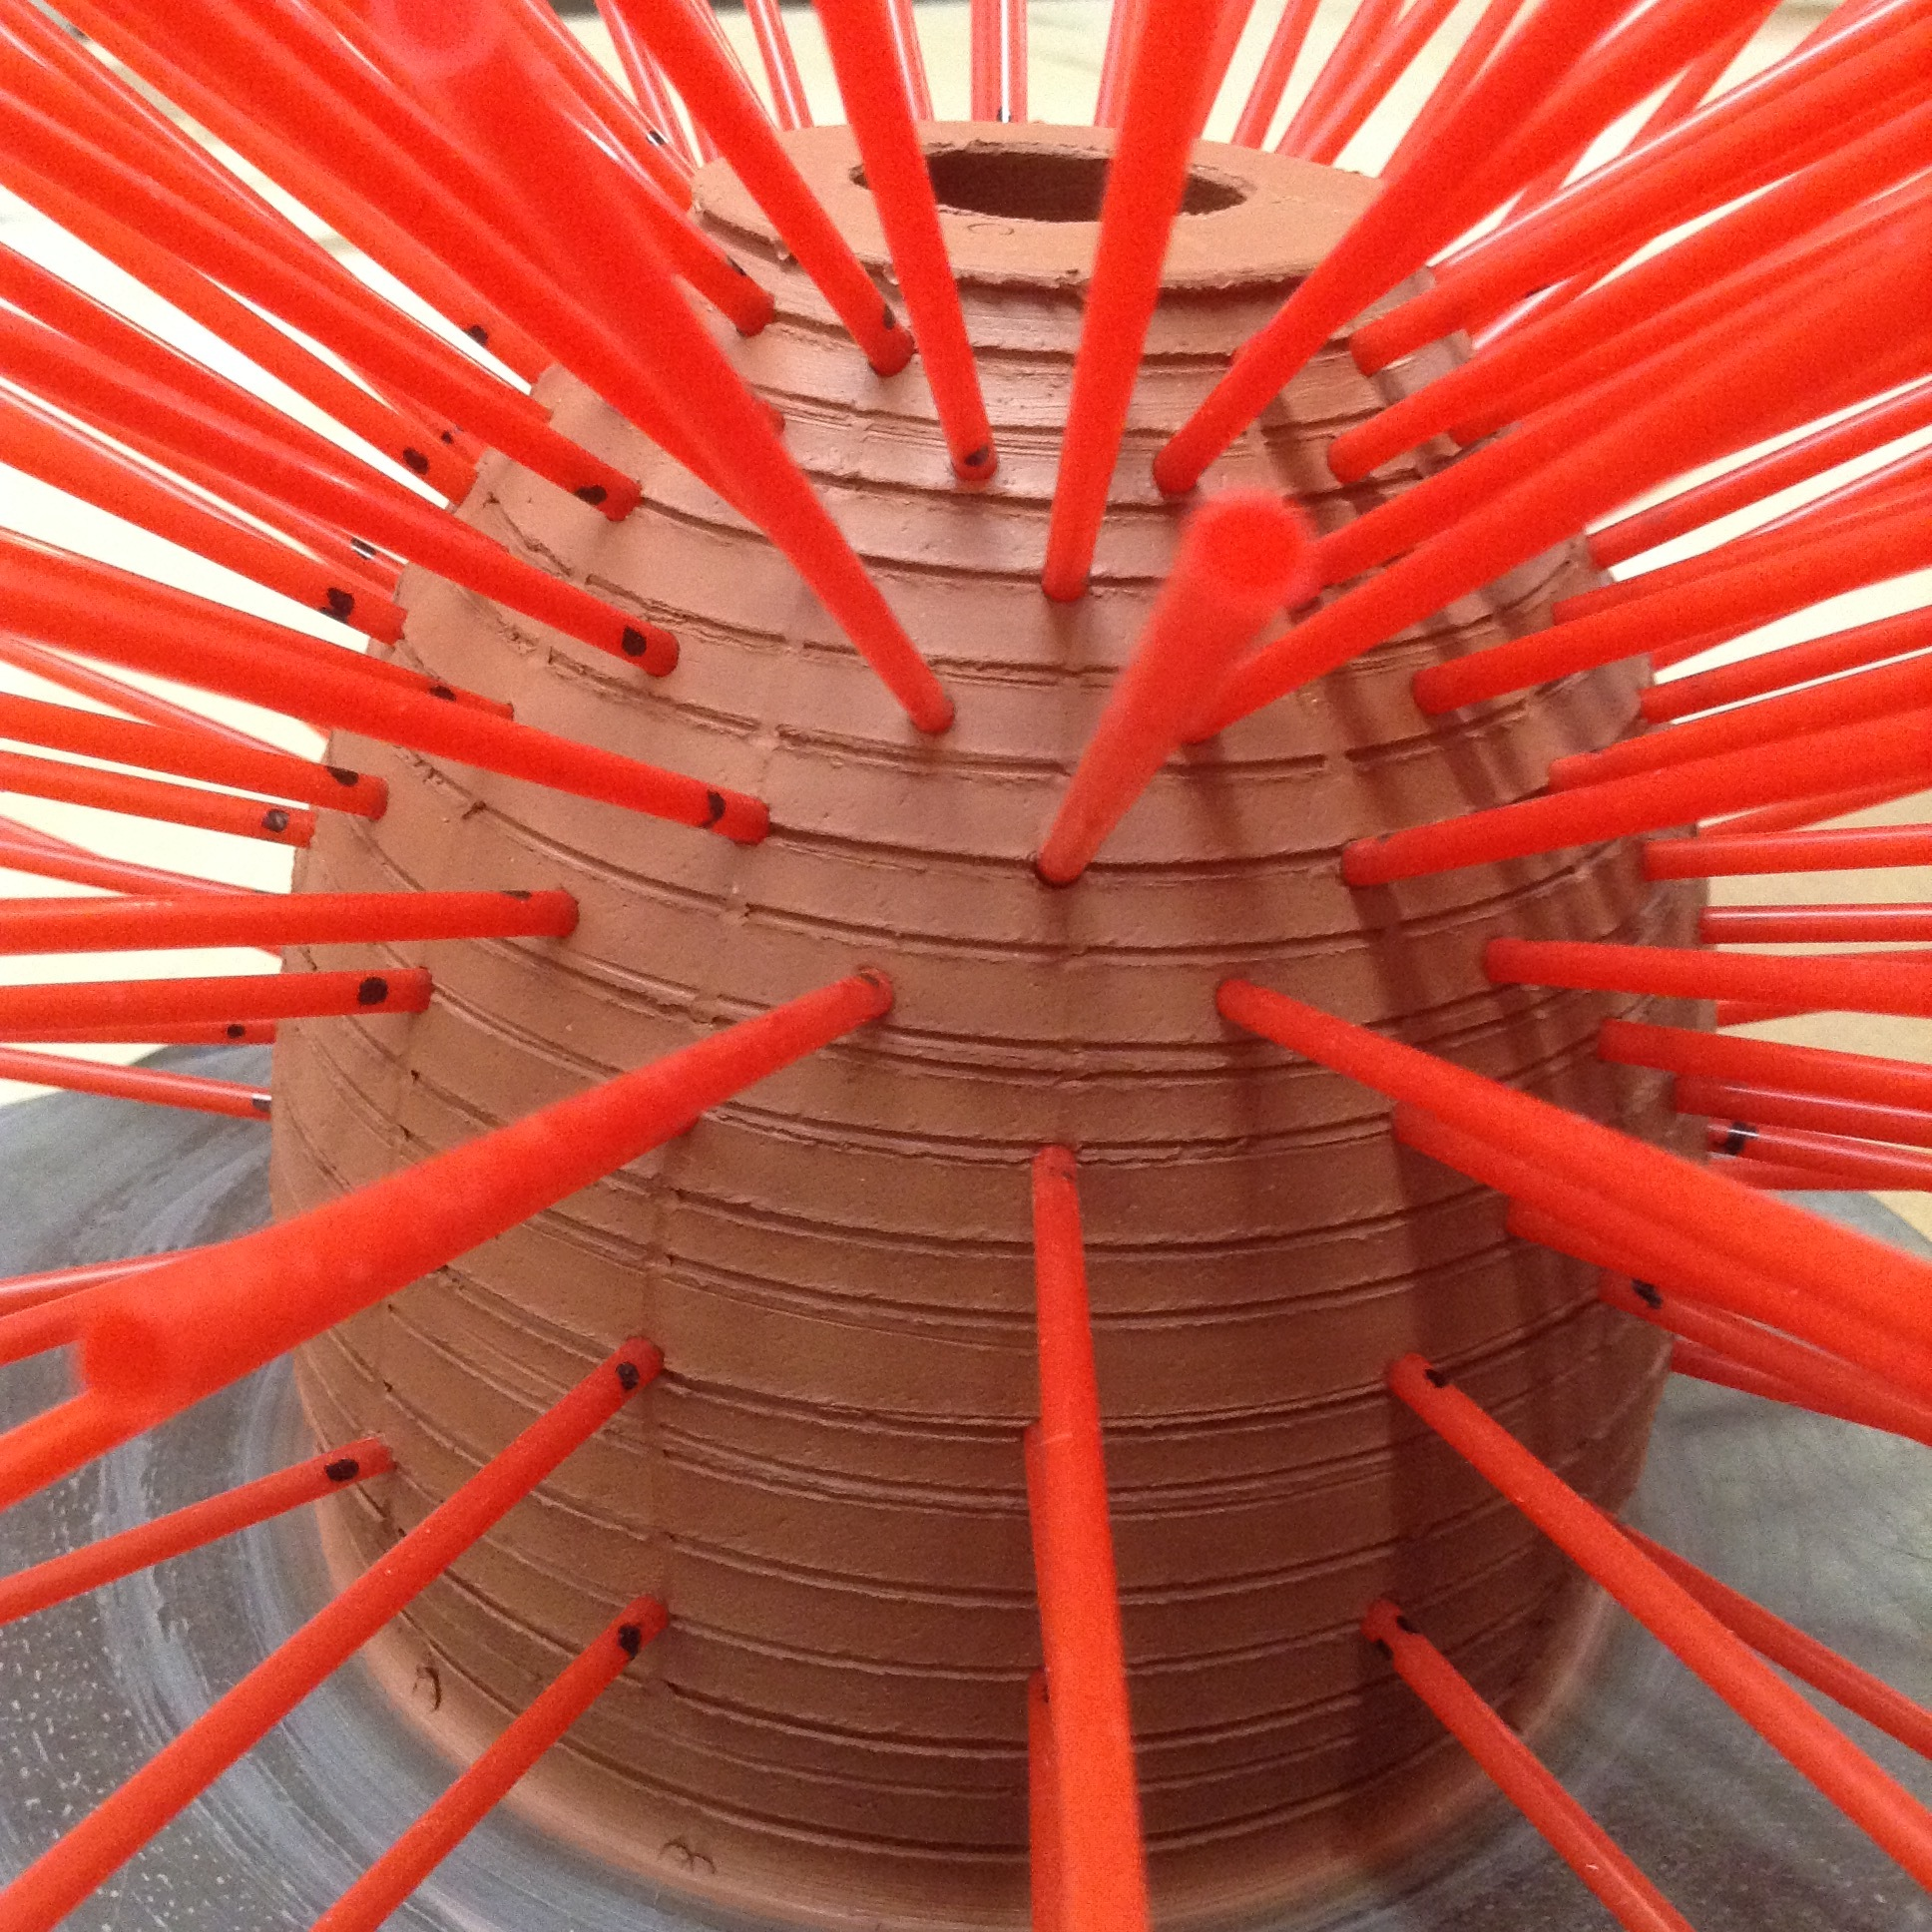 cone straw install detail.JPG